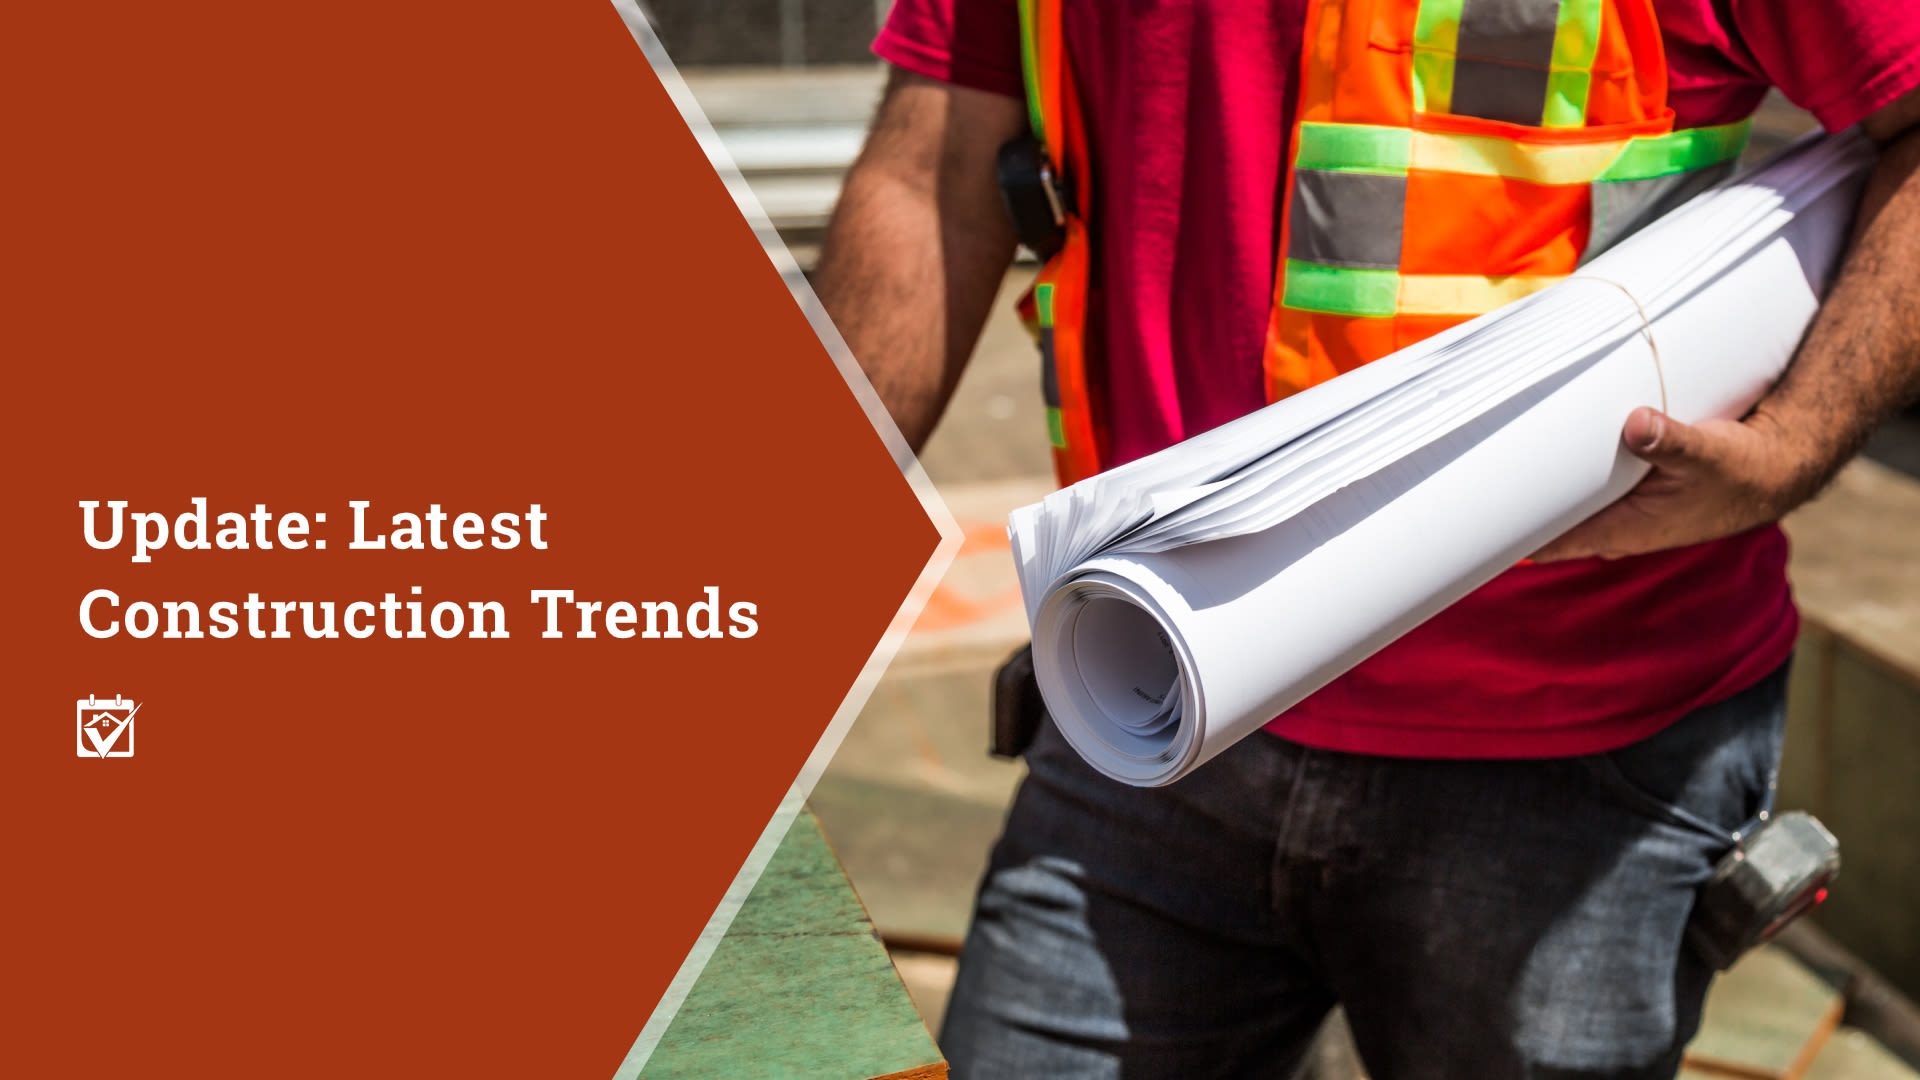 Update: Latest Construction Trends